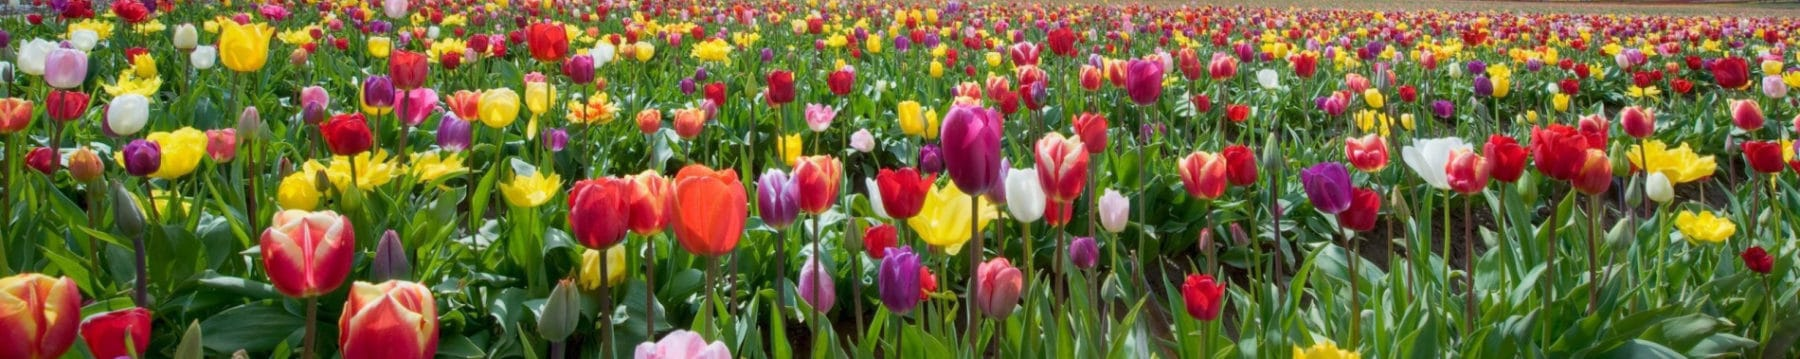 tulips-nature-flowers-field User Reviews